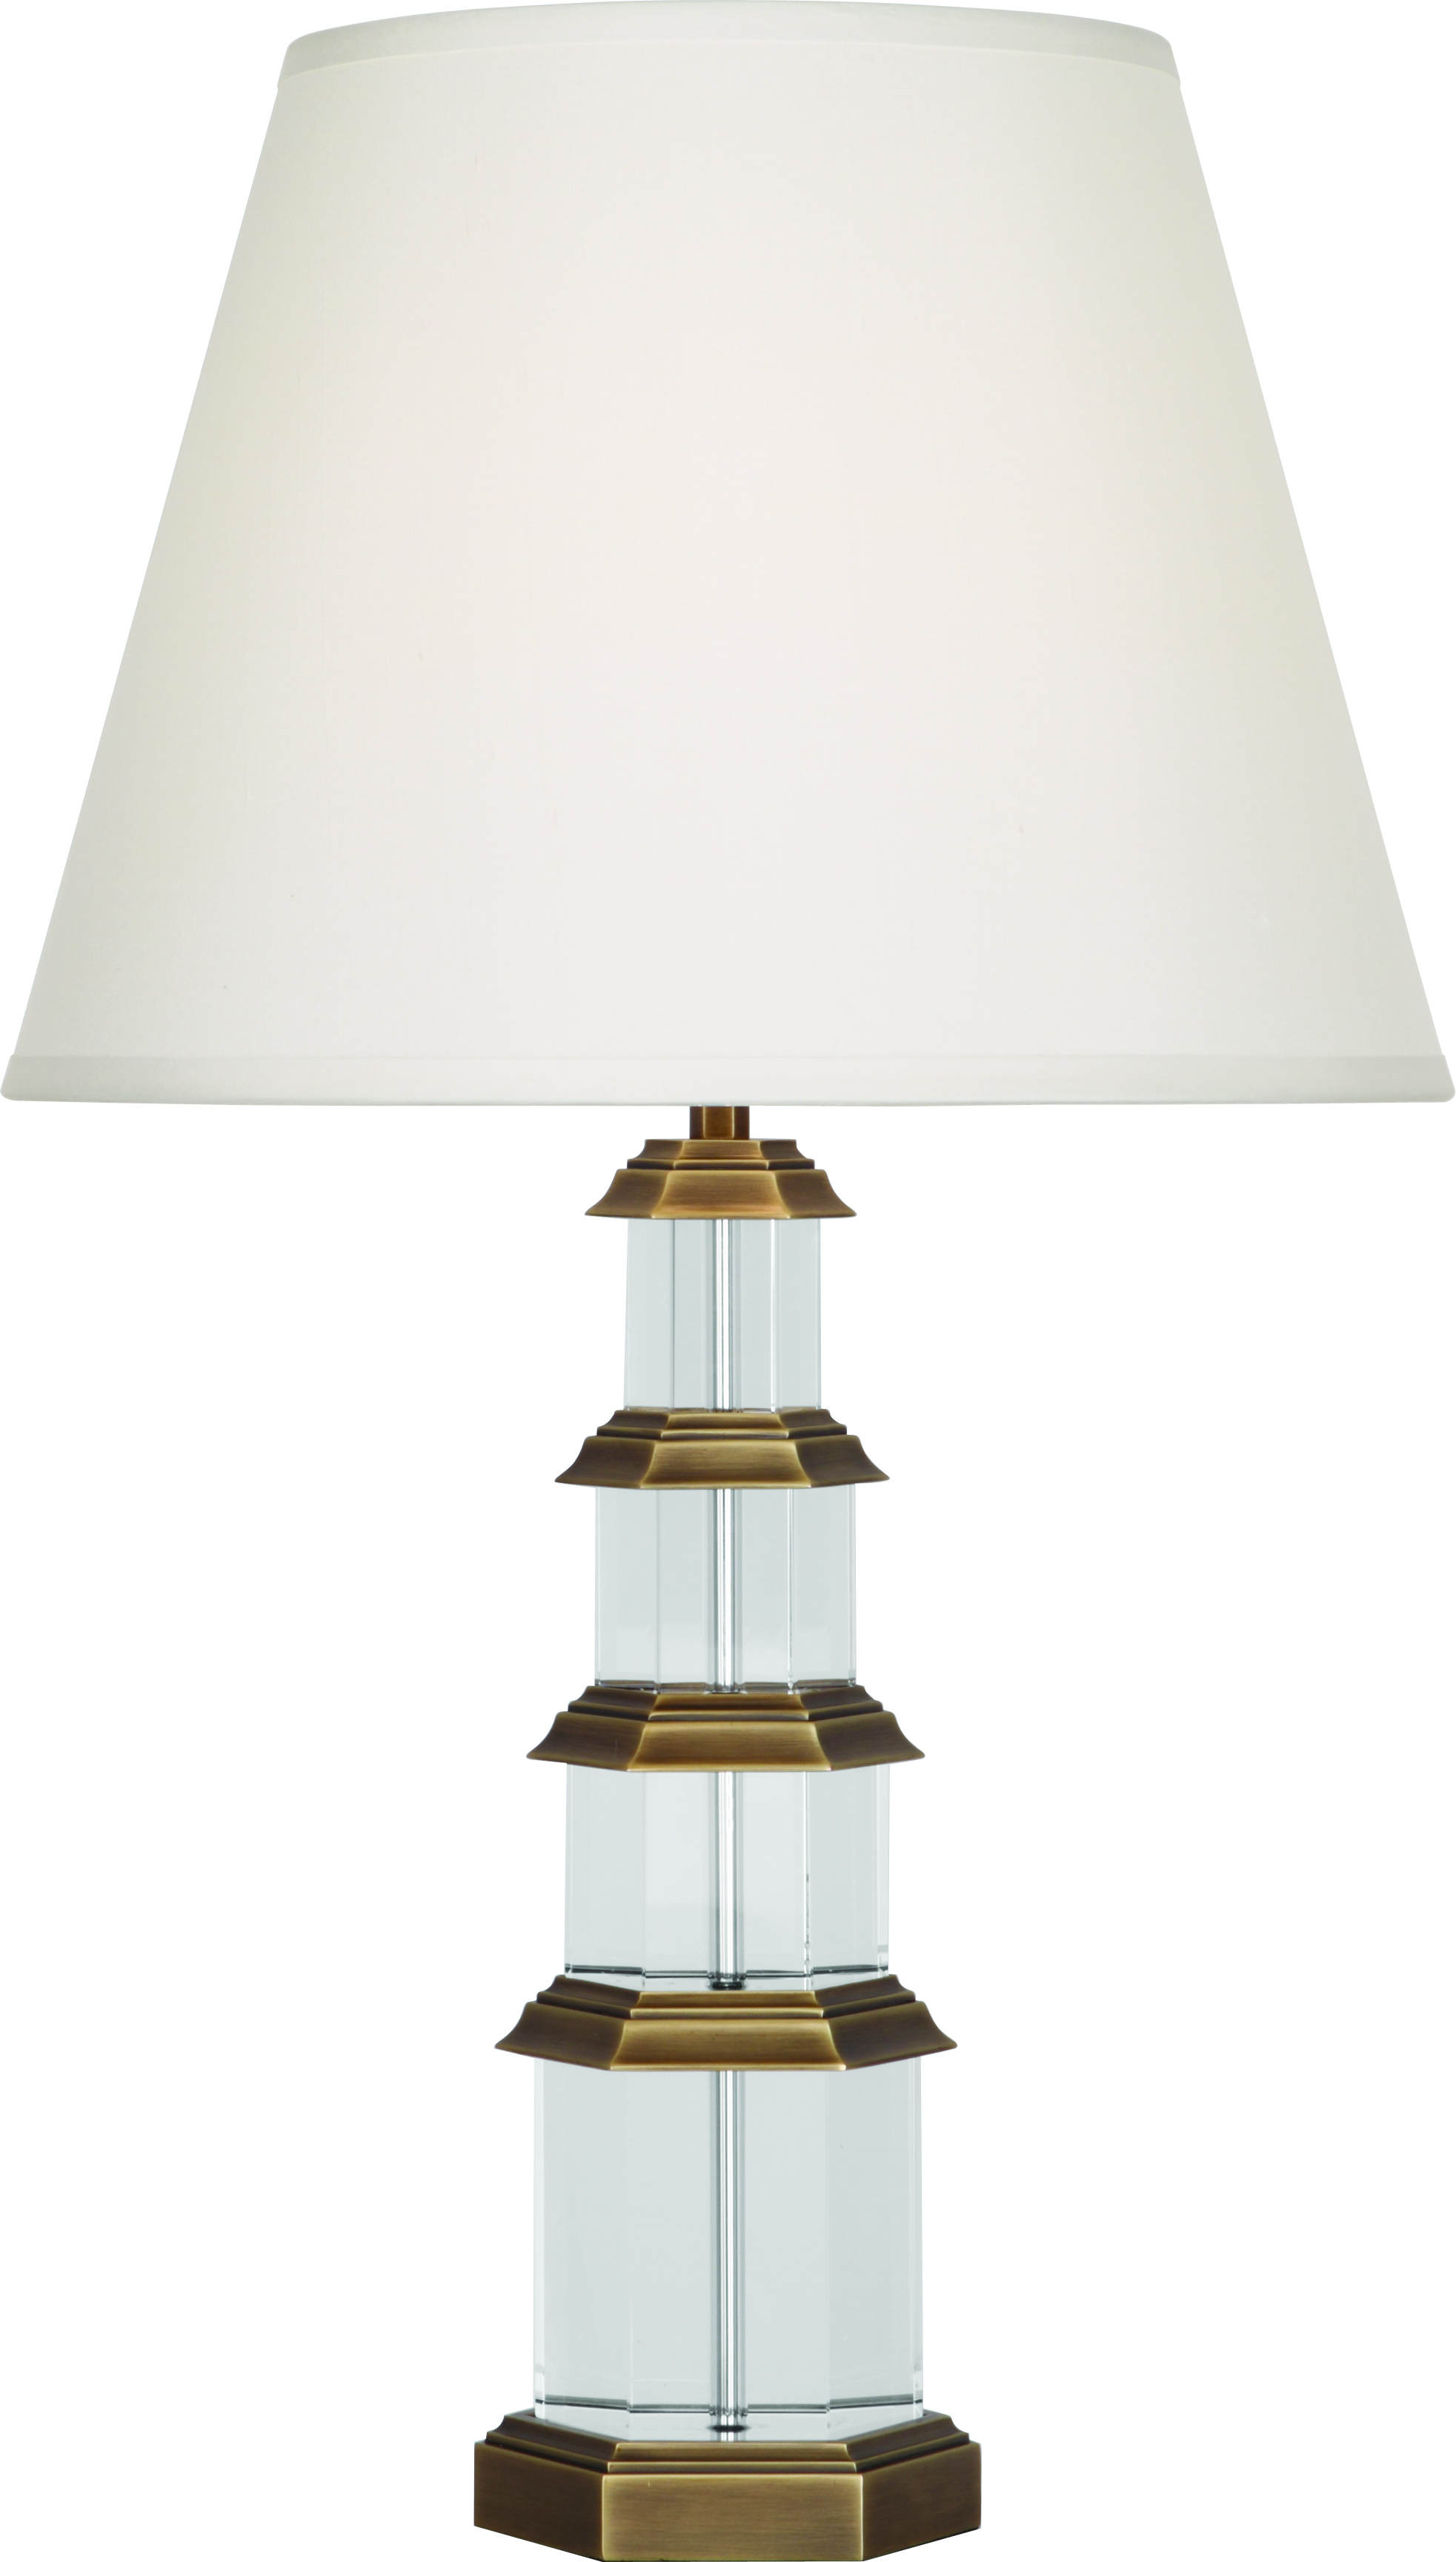 Trend Meets Tradition in this Gorgeous Lamp from the Colonial Williamsburg Collection for Robert Abbey Lighting.